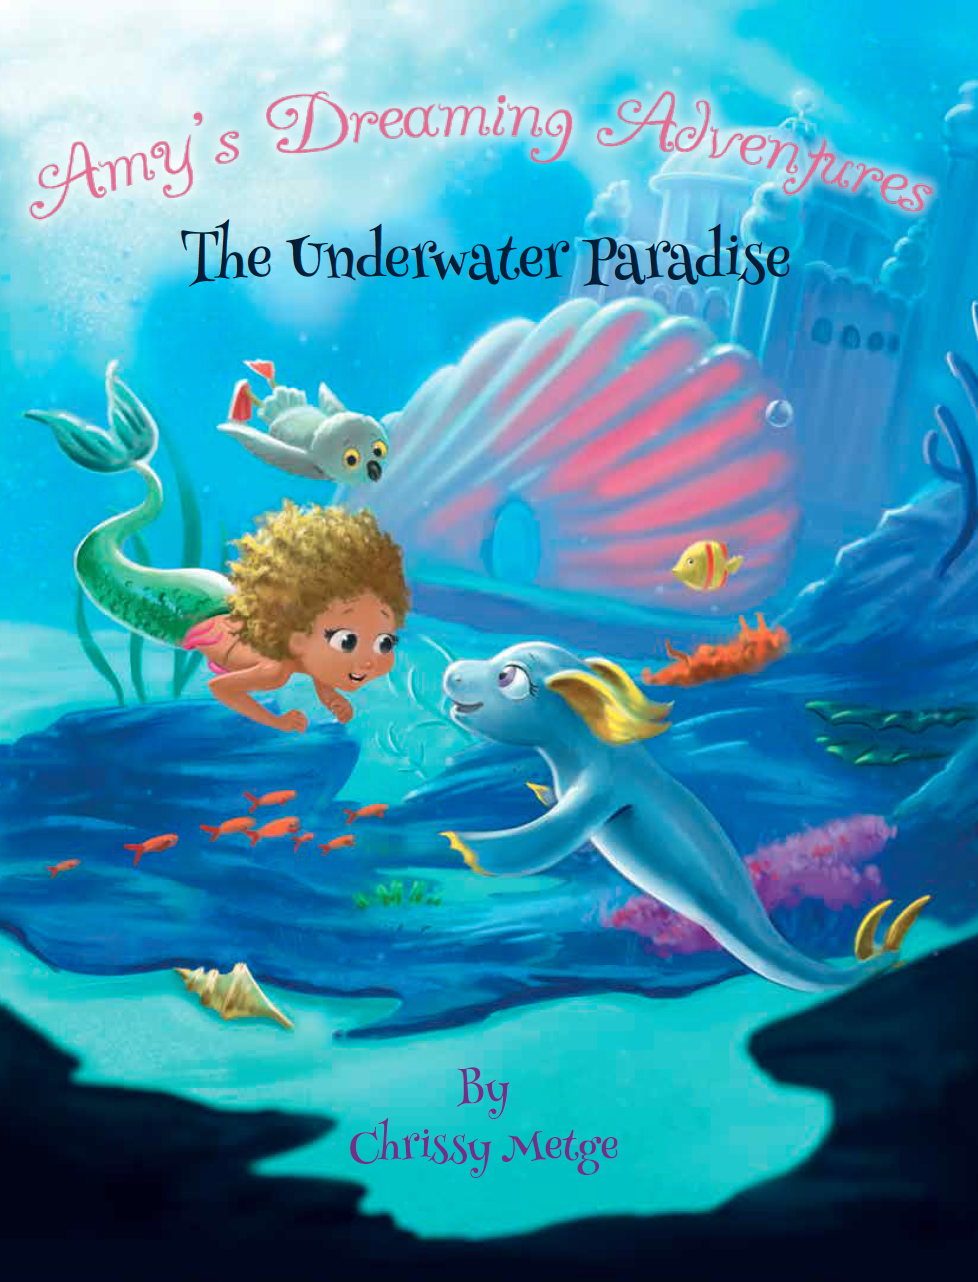 Amy's Dreaming Adventures - The Underwater Paradise - PRE-ORDER - MAY 2019 00007